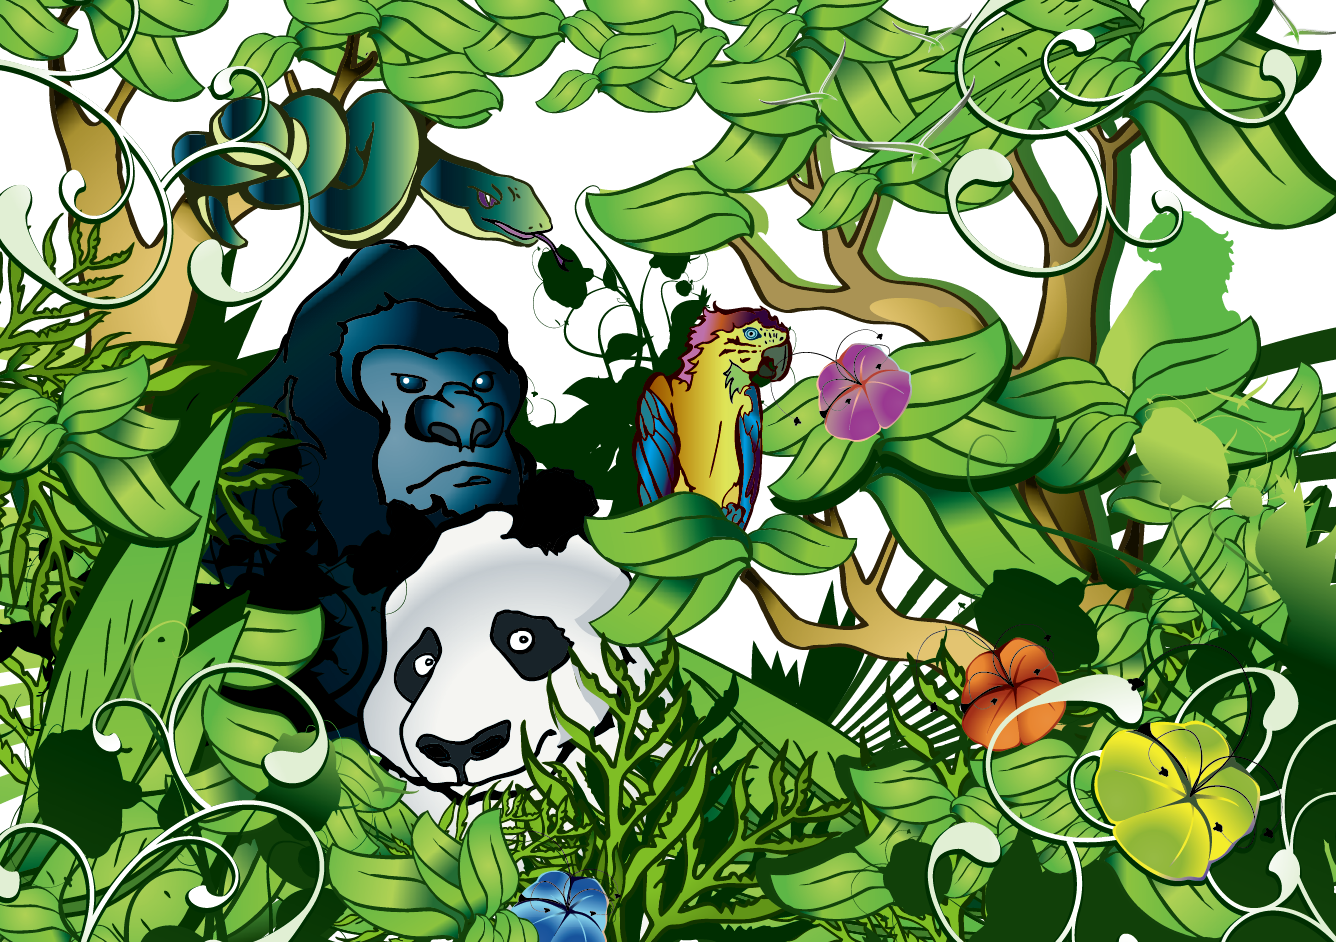 Giant panda forest animal. Jungle clipart flora and fauna